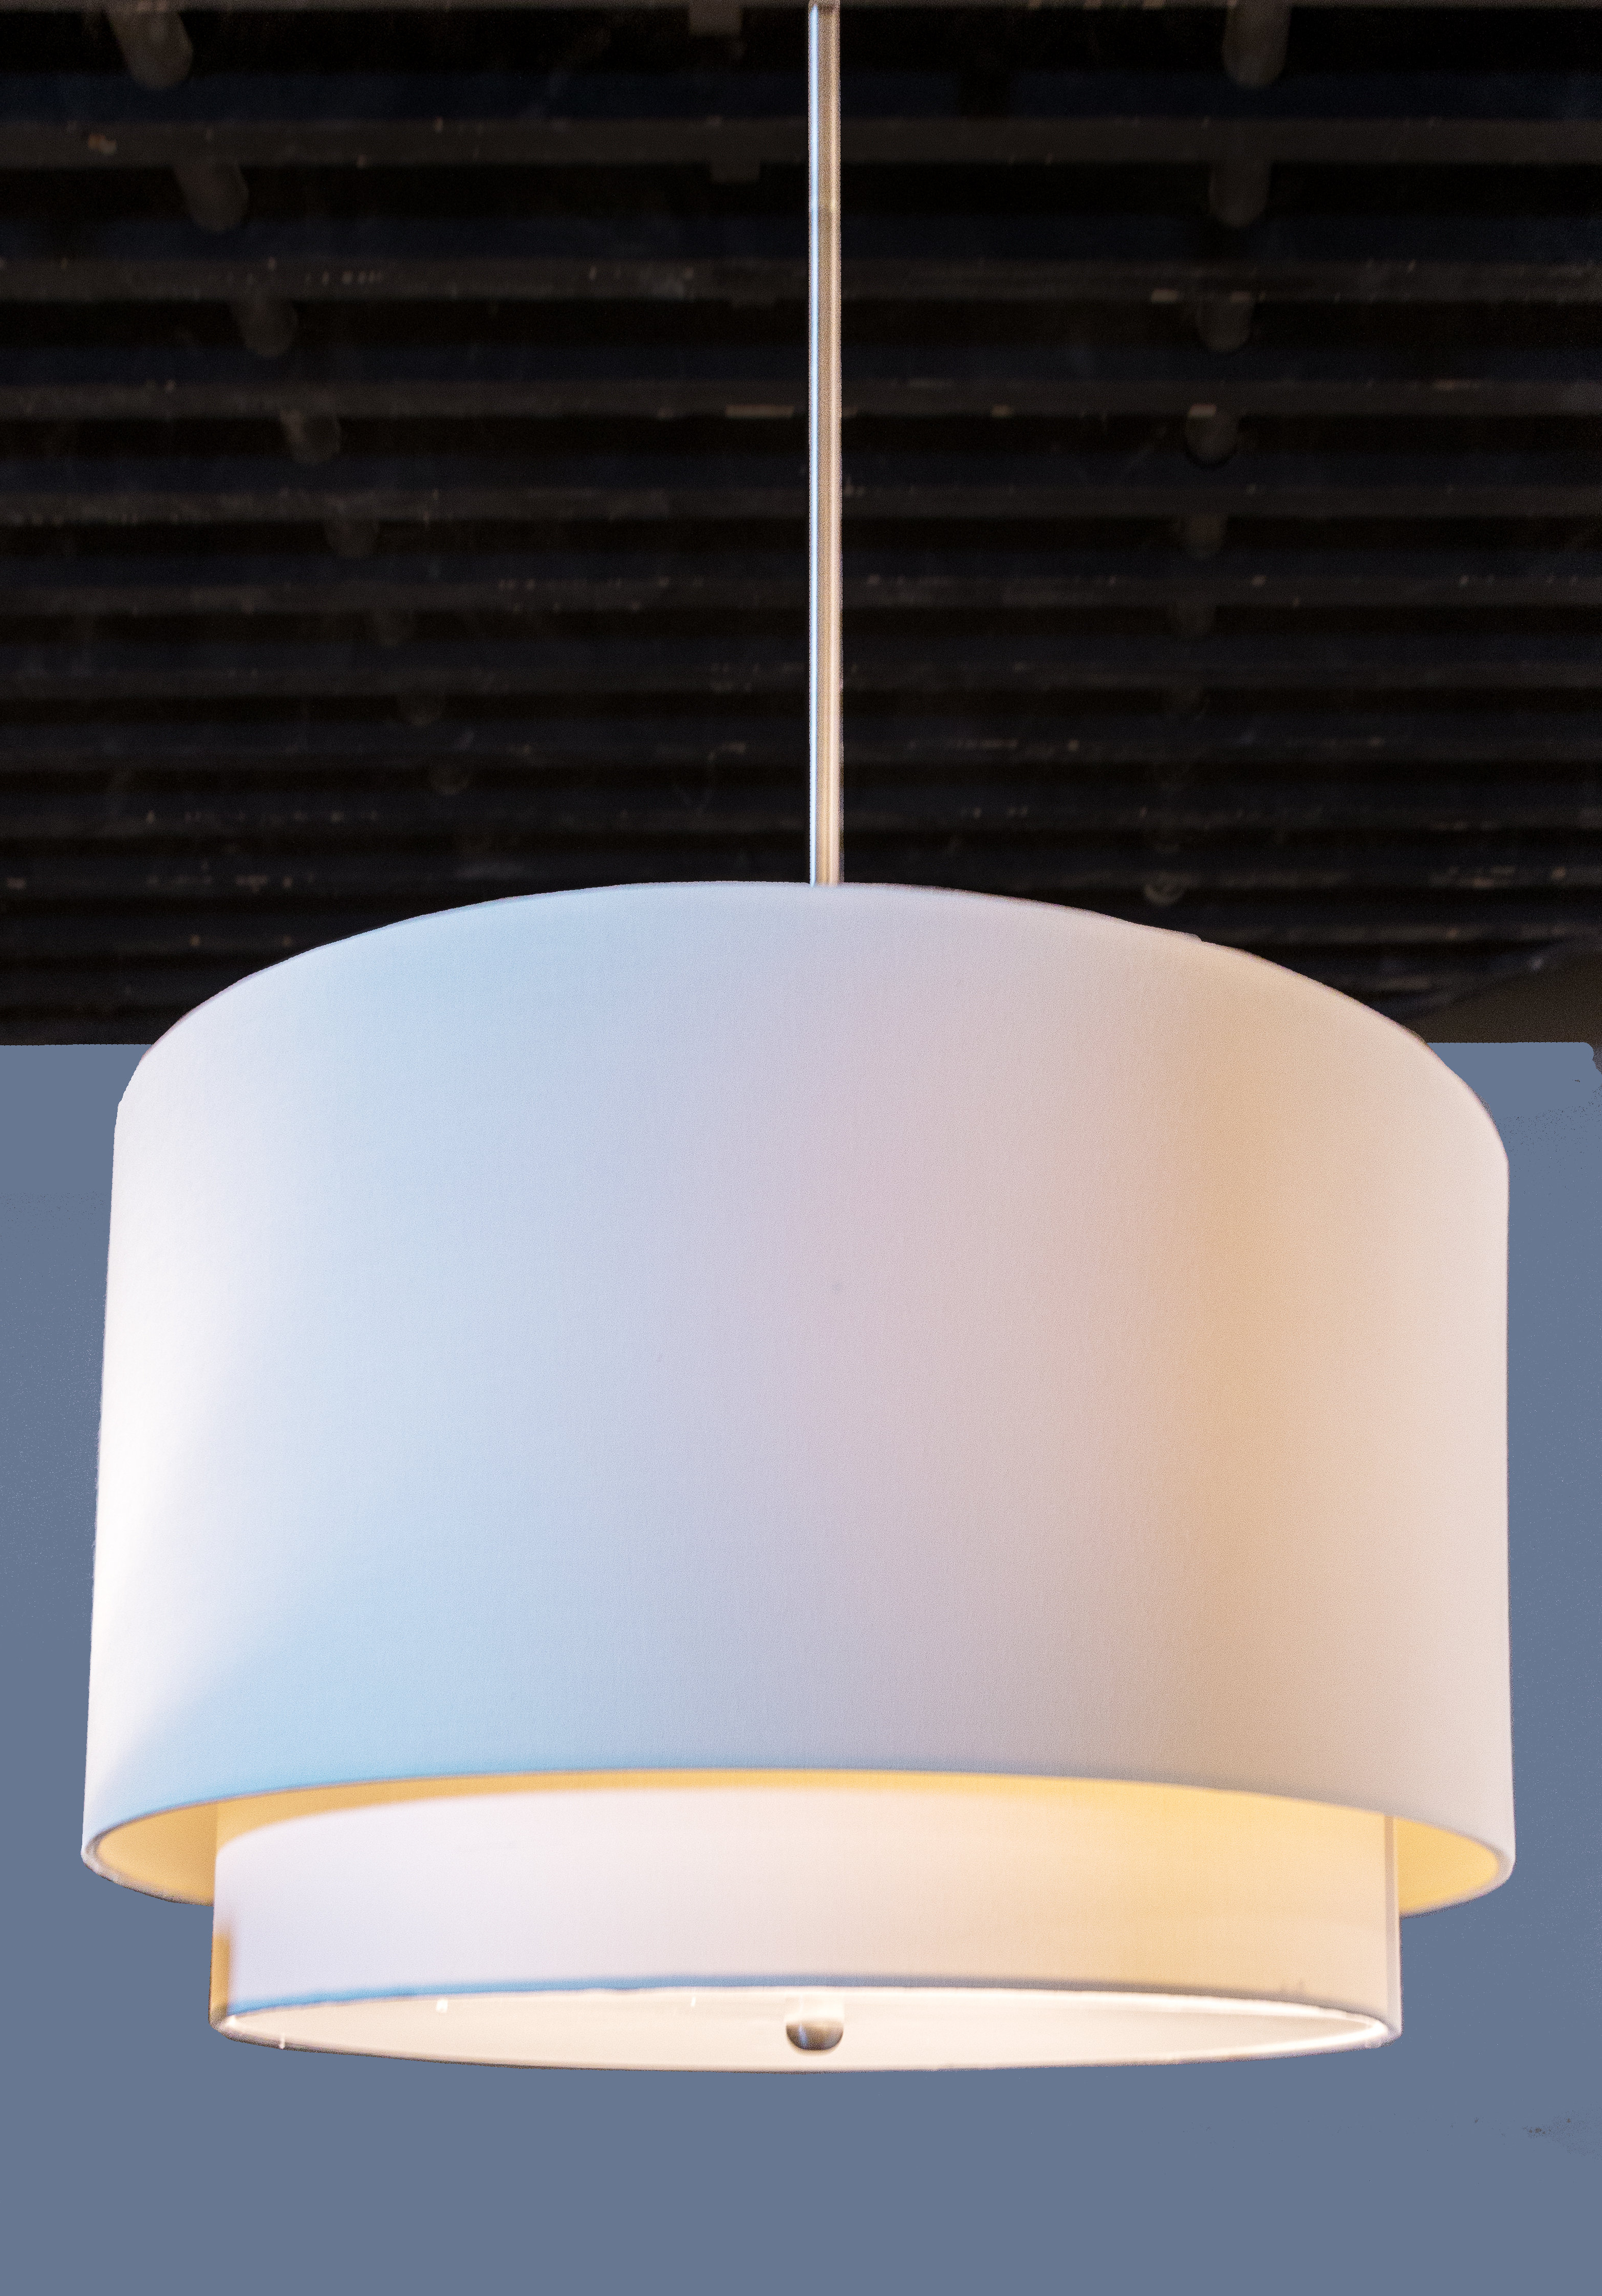 Friedland 3 Light Drum Tiered Pendant Within Popular Friedland 3 Light Drum Tiered Pendants (View 4 of 20)